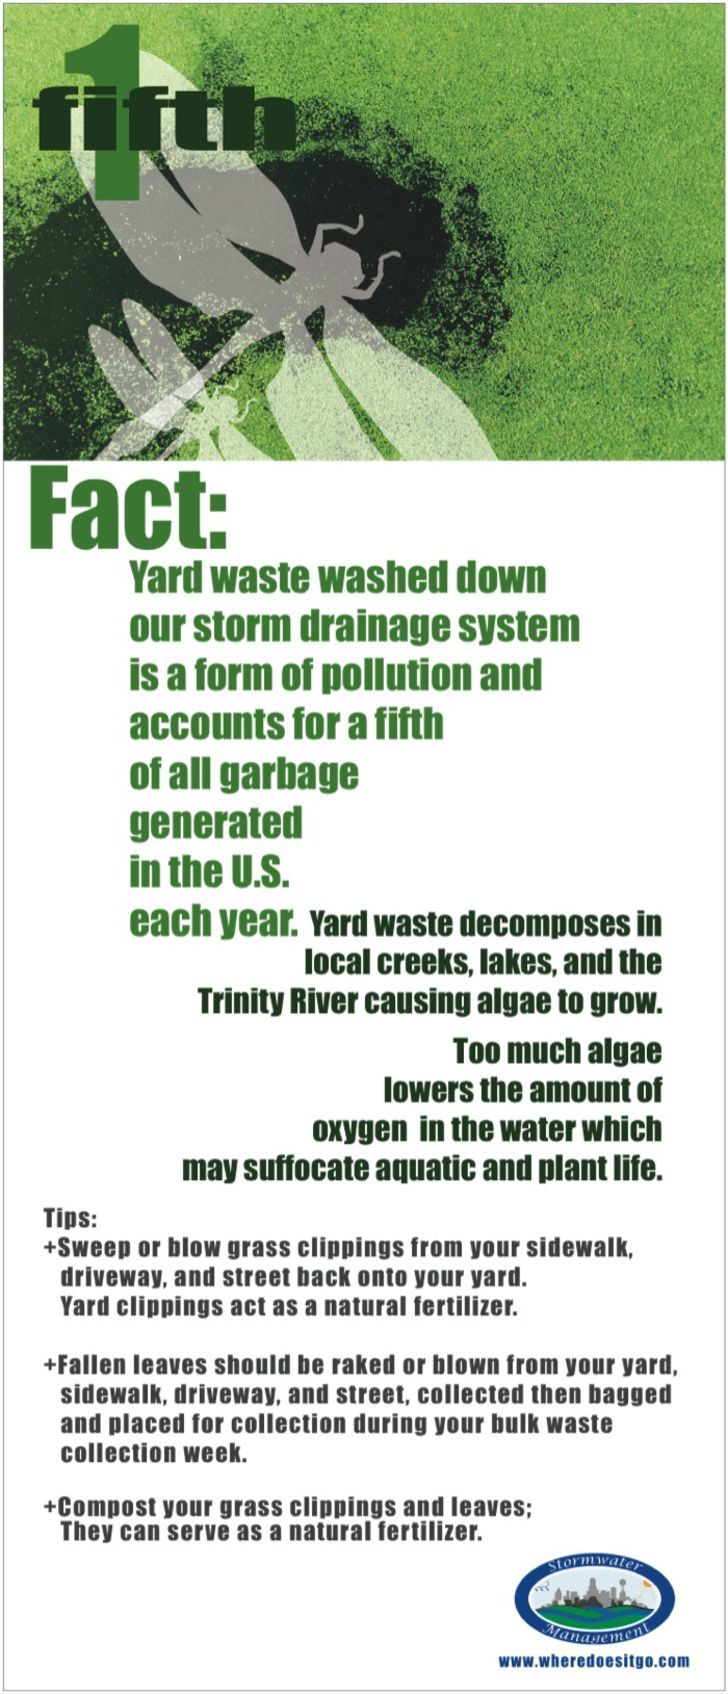 City of Dallas Stormwater Management